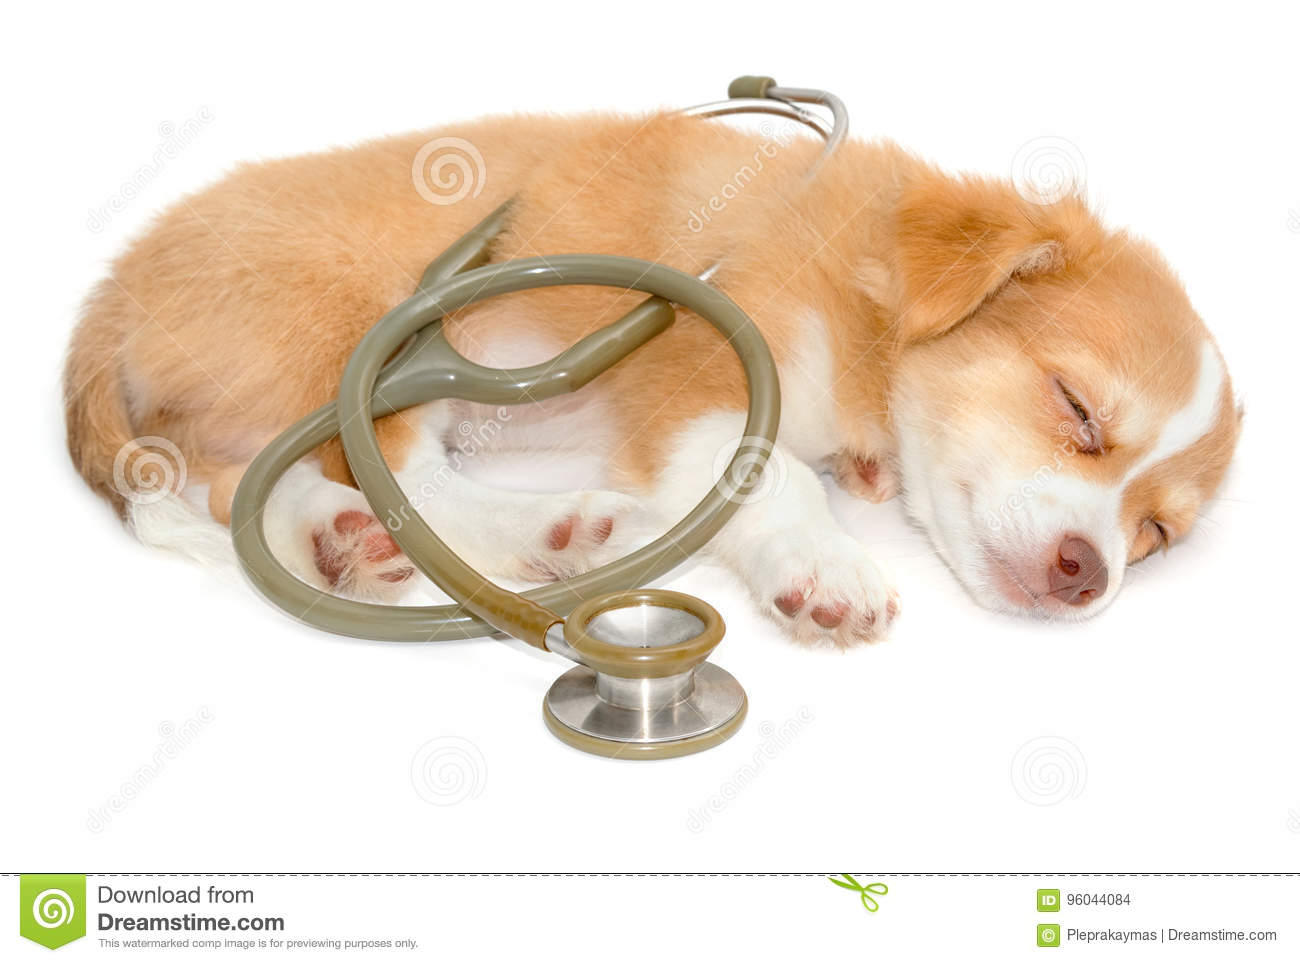 Chihuahua dog sleeping with stethoscope